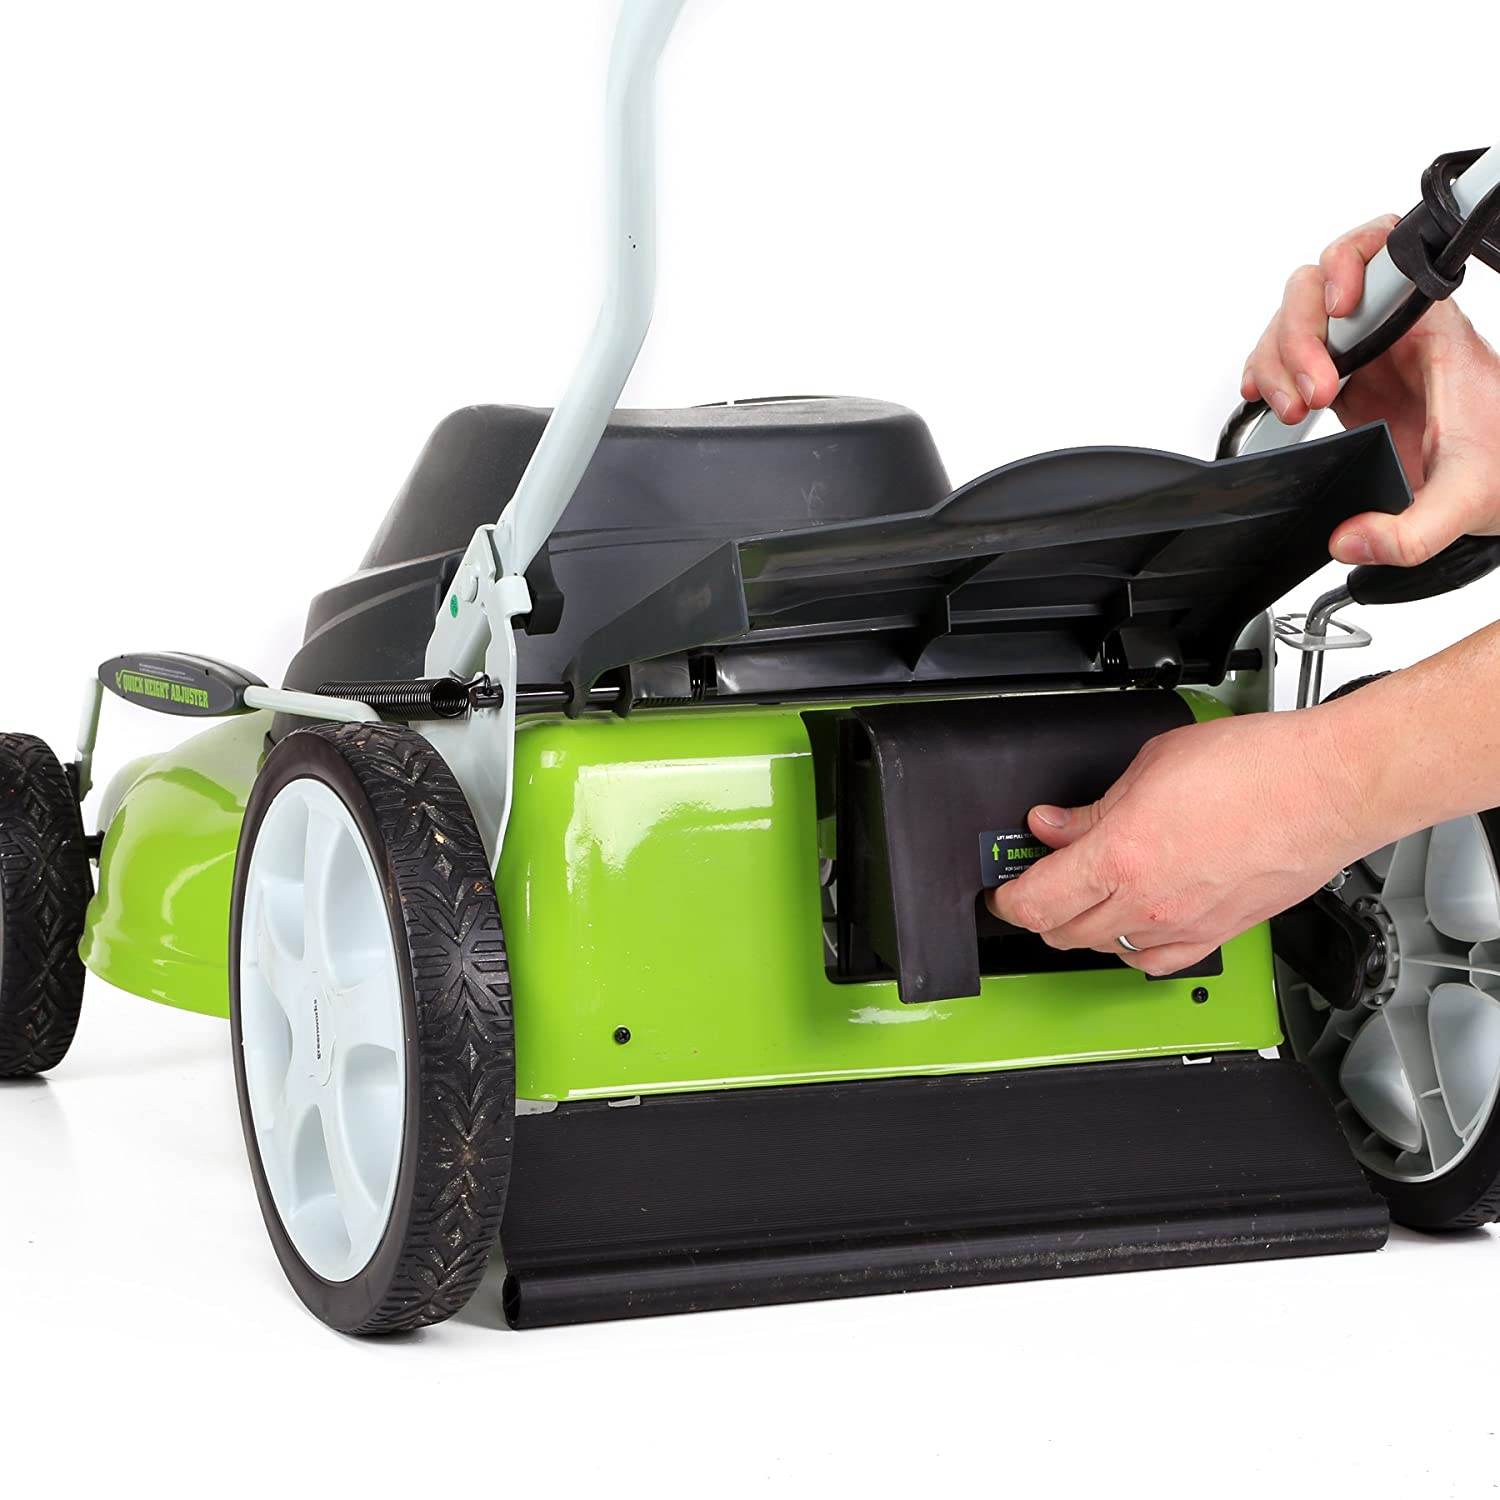 GreenWorks 25022 12 Amp Corded 20-Inch Lawn Mower for medium and large yards